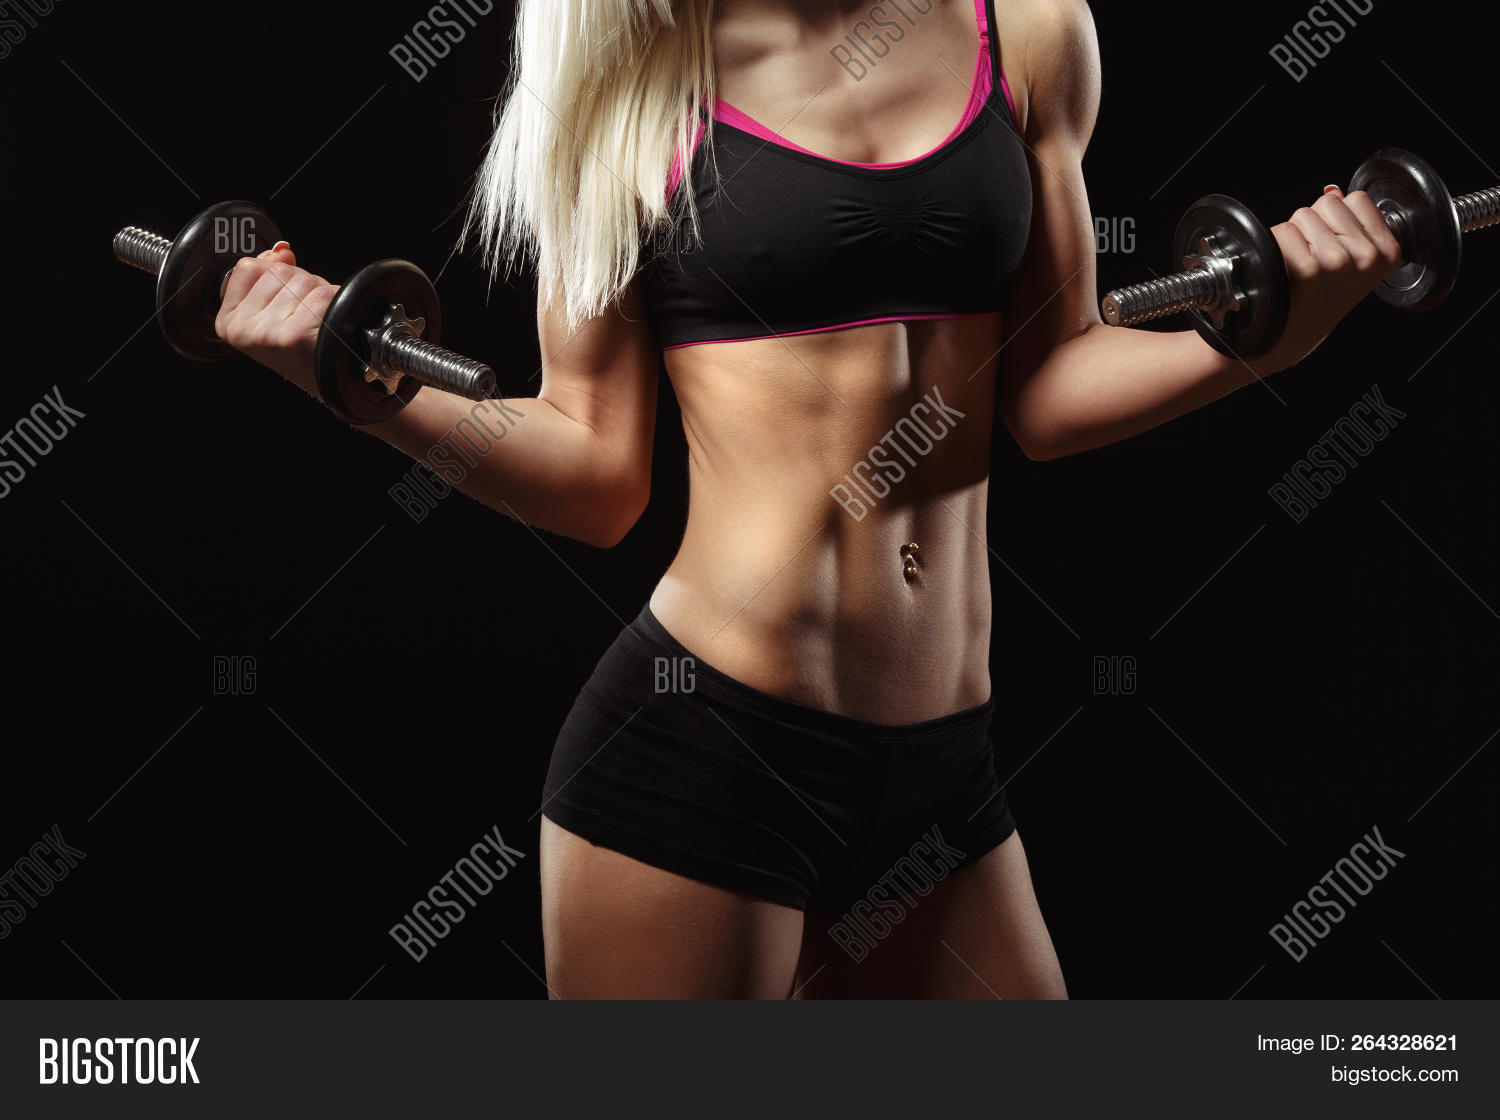 active,athlete,back,beautiful,behind,biceps,black,blonde,body,bodybuilder,booty,brunette,build,builder,butt,dark,dumbbell,equipment,exercise,female,figure,fit,fitness,girl,gym,health,heavy,lift,lifting,motivator,muscle,perfect,photo,pose,power,pump,set,sexy,sport,sportswear,strong,sweat,train,training,wear,weight,white,woman,workout